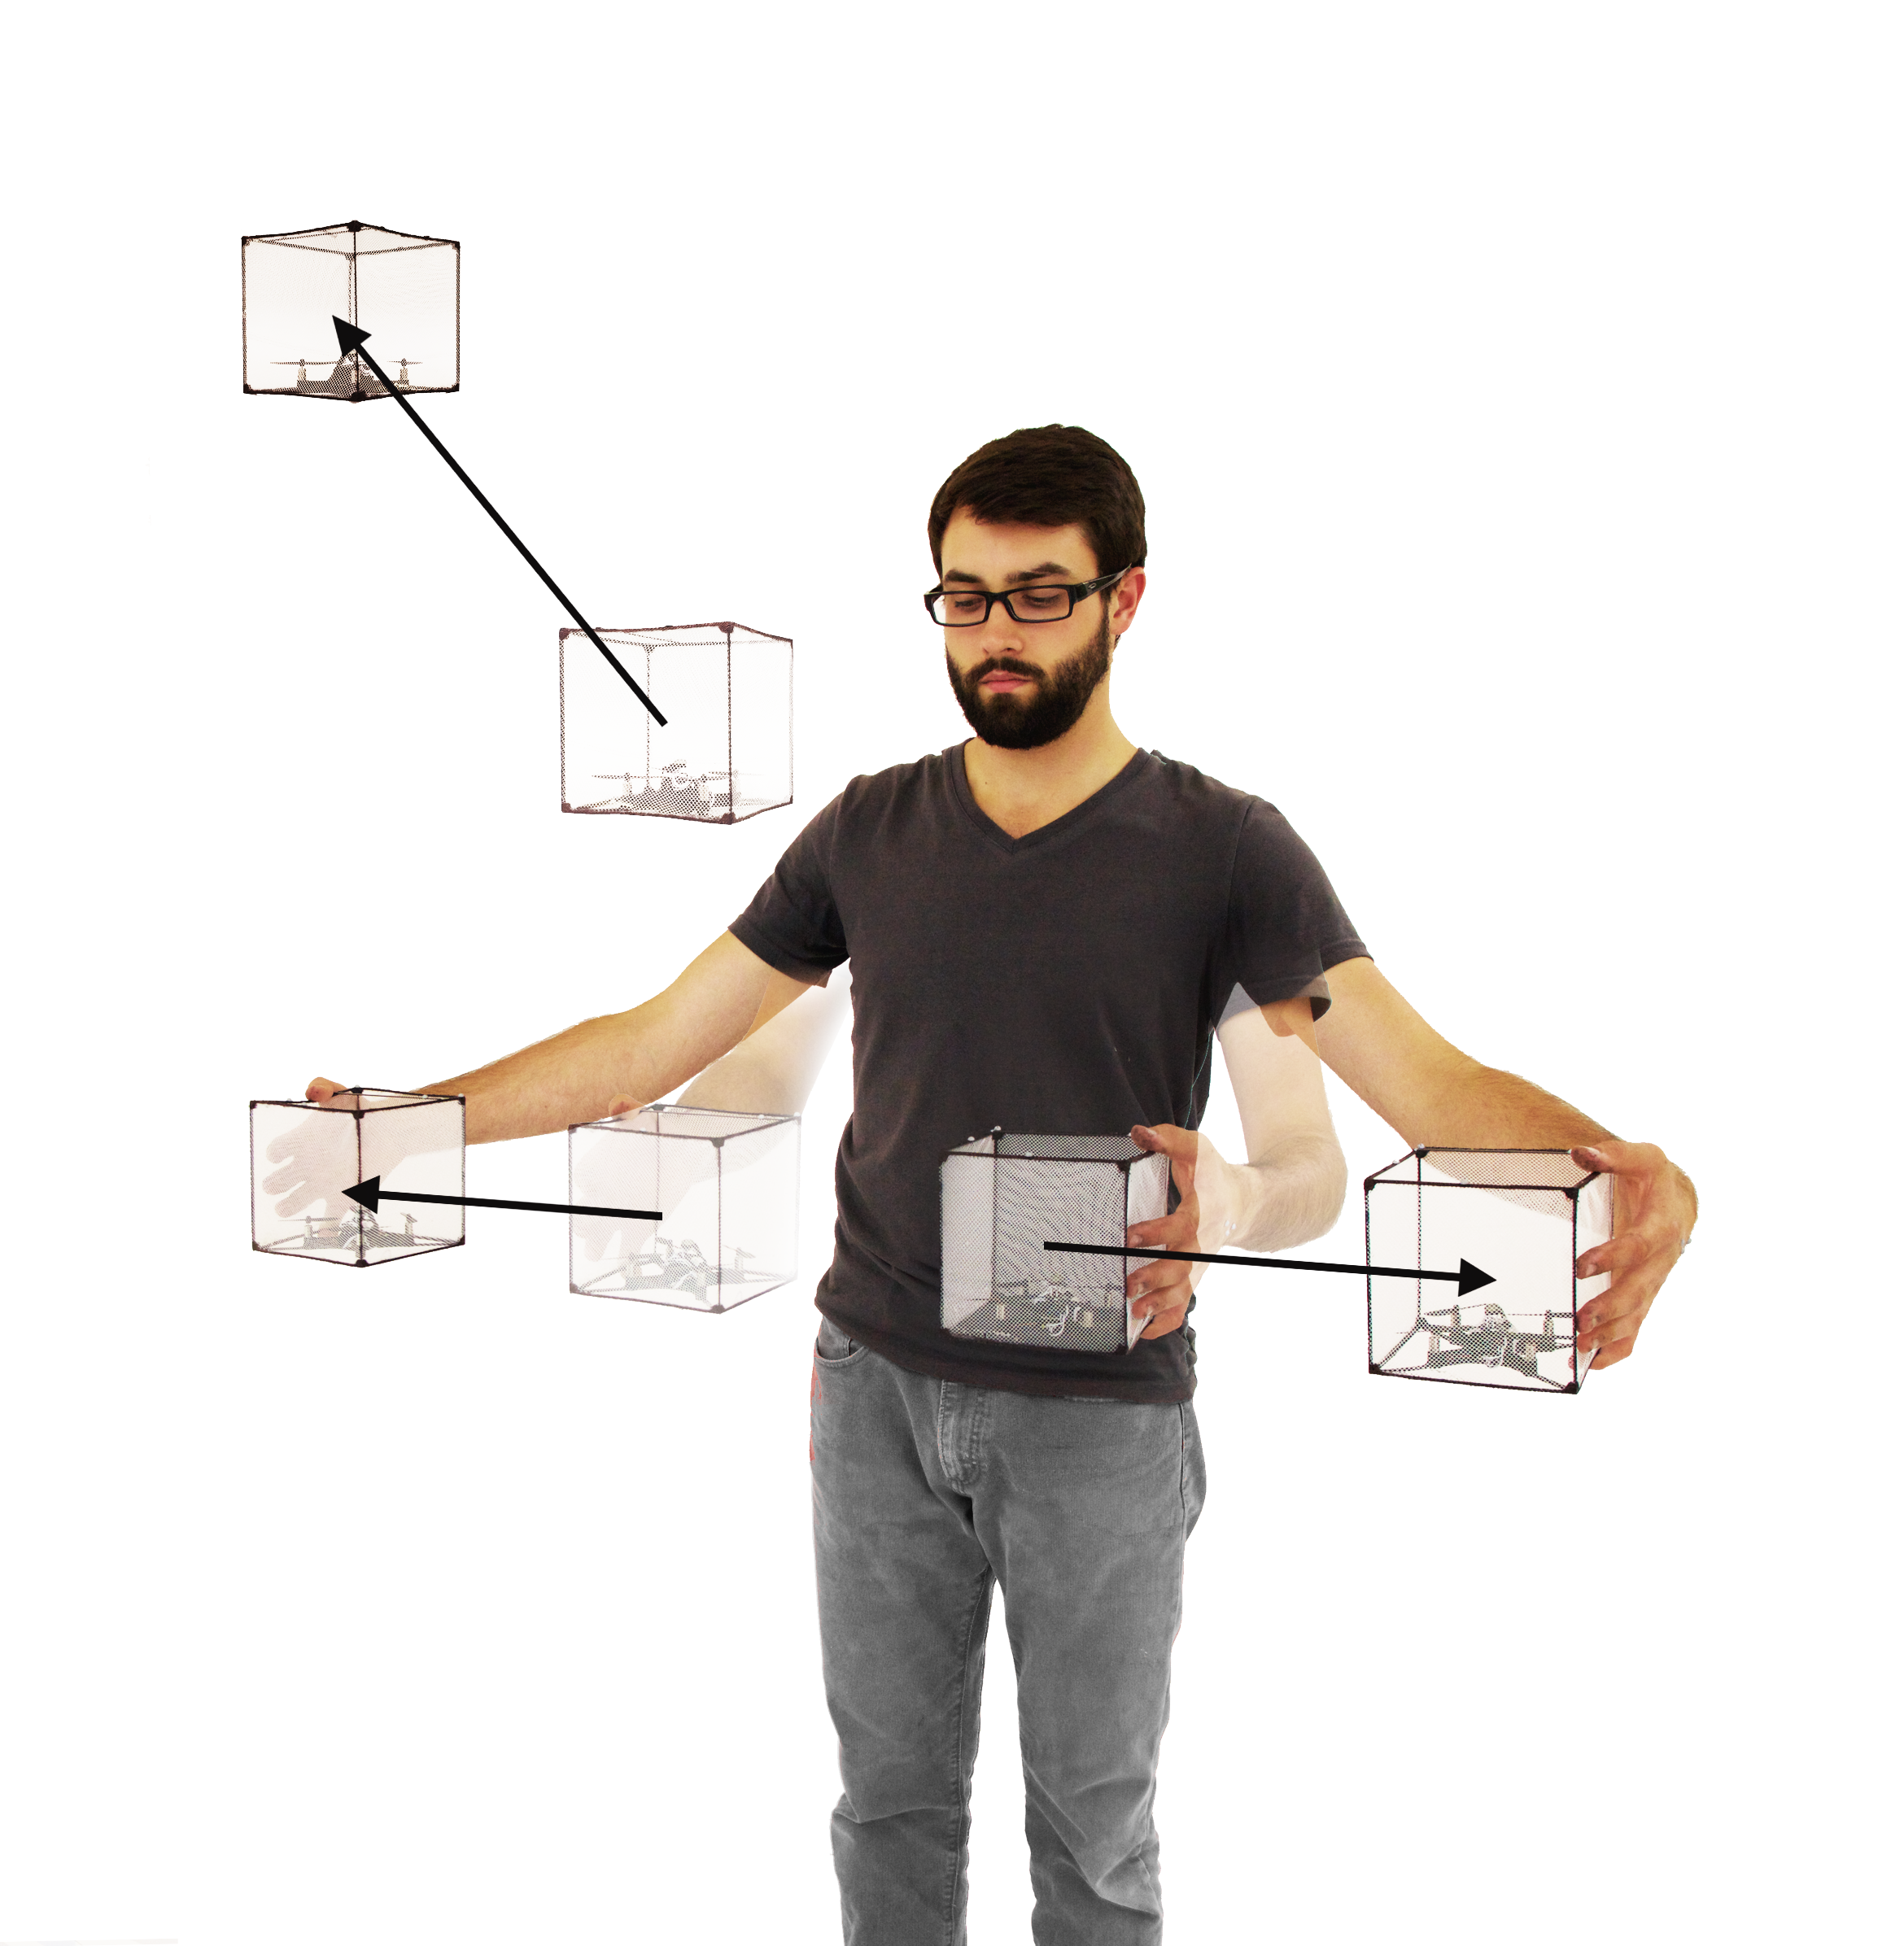 BitDrones (2015): Resizing a group of ShapeDrones with a Pinch gesture.